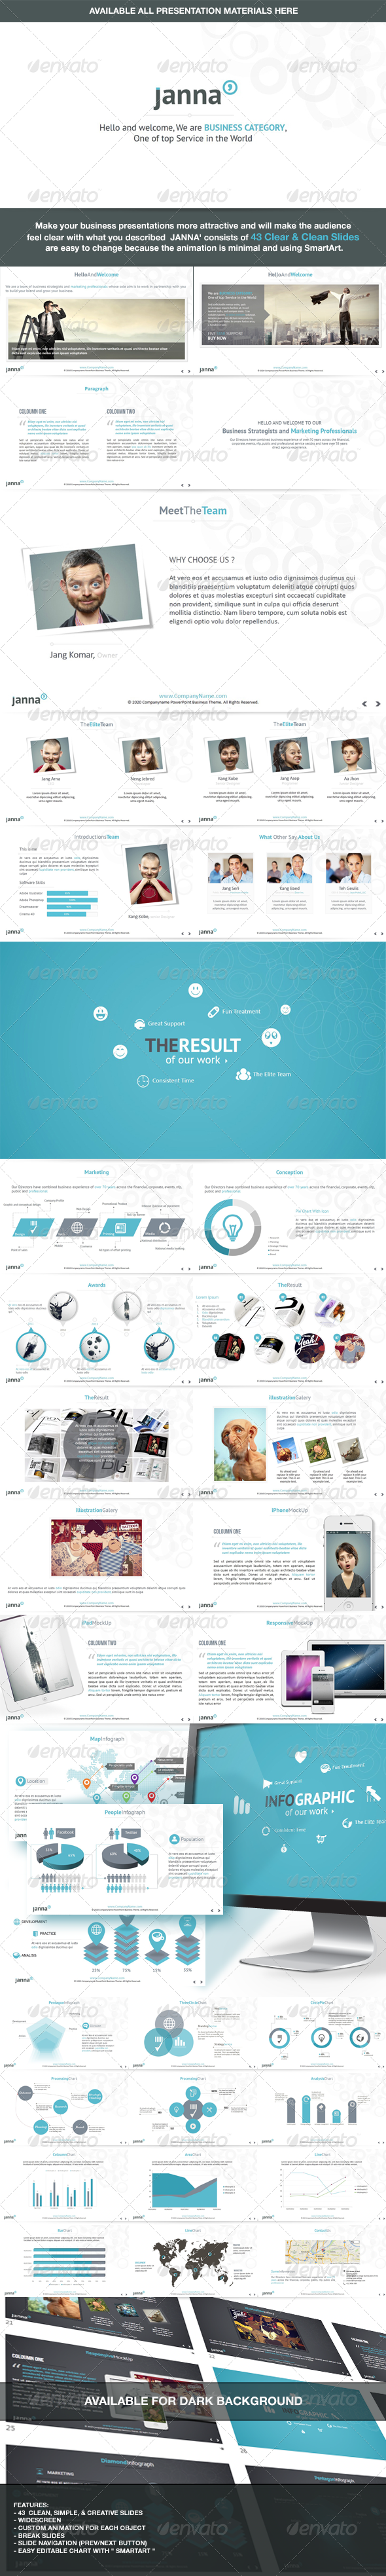 GraphicRiver Janna Clear & Clean Keynote Template 8228730